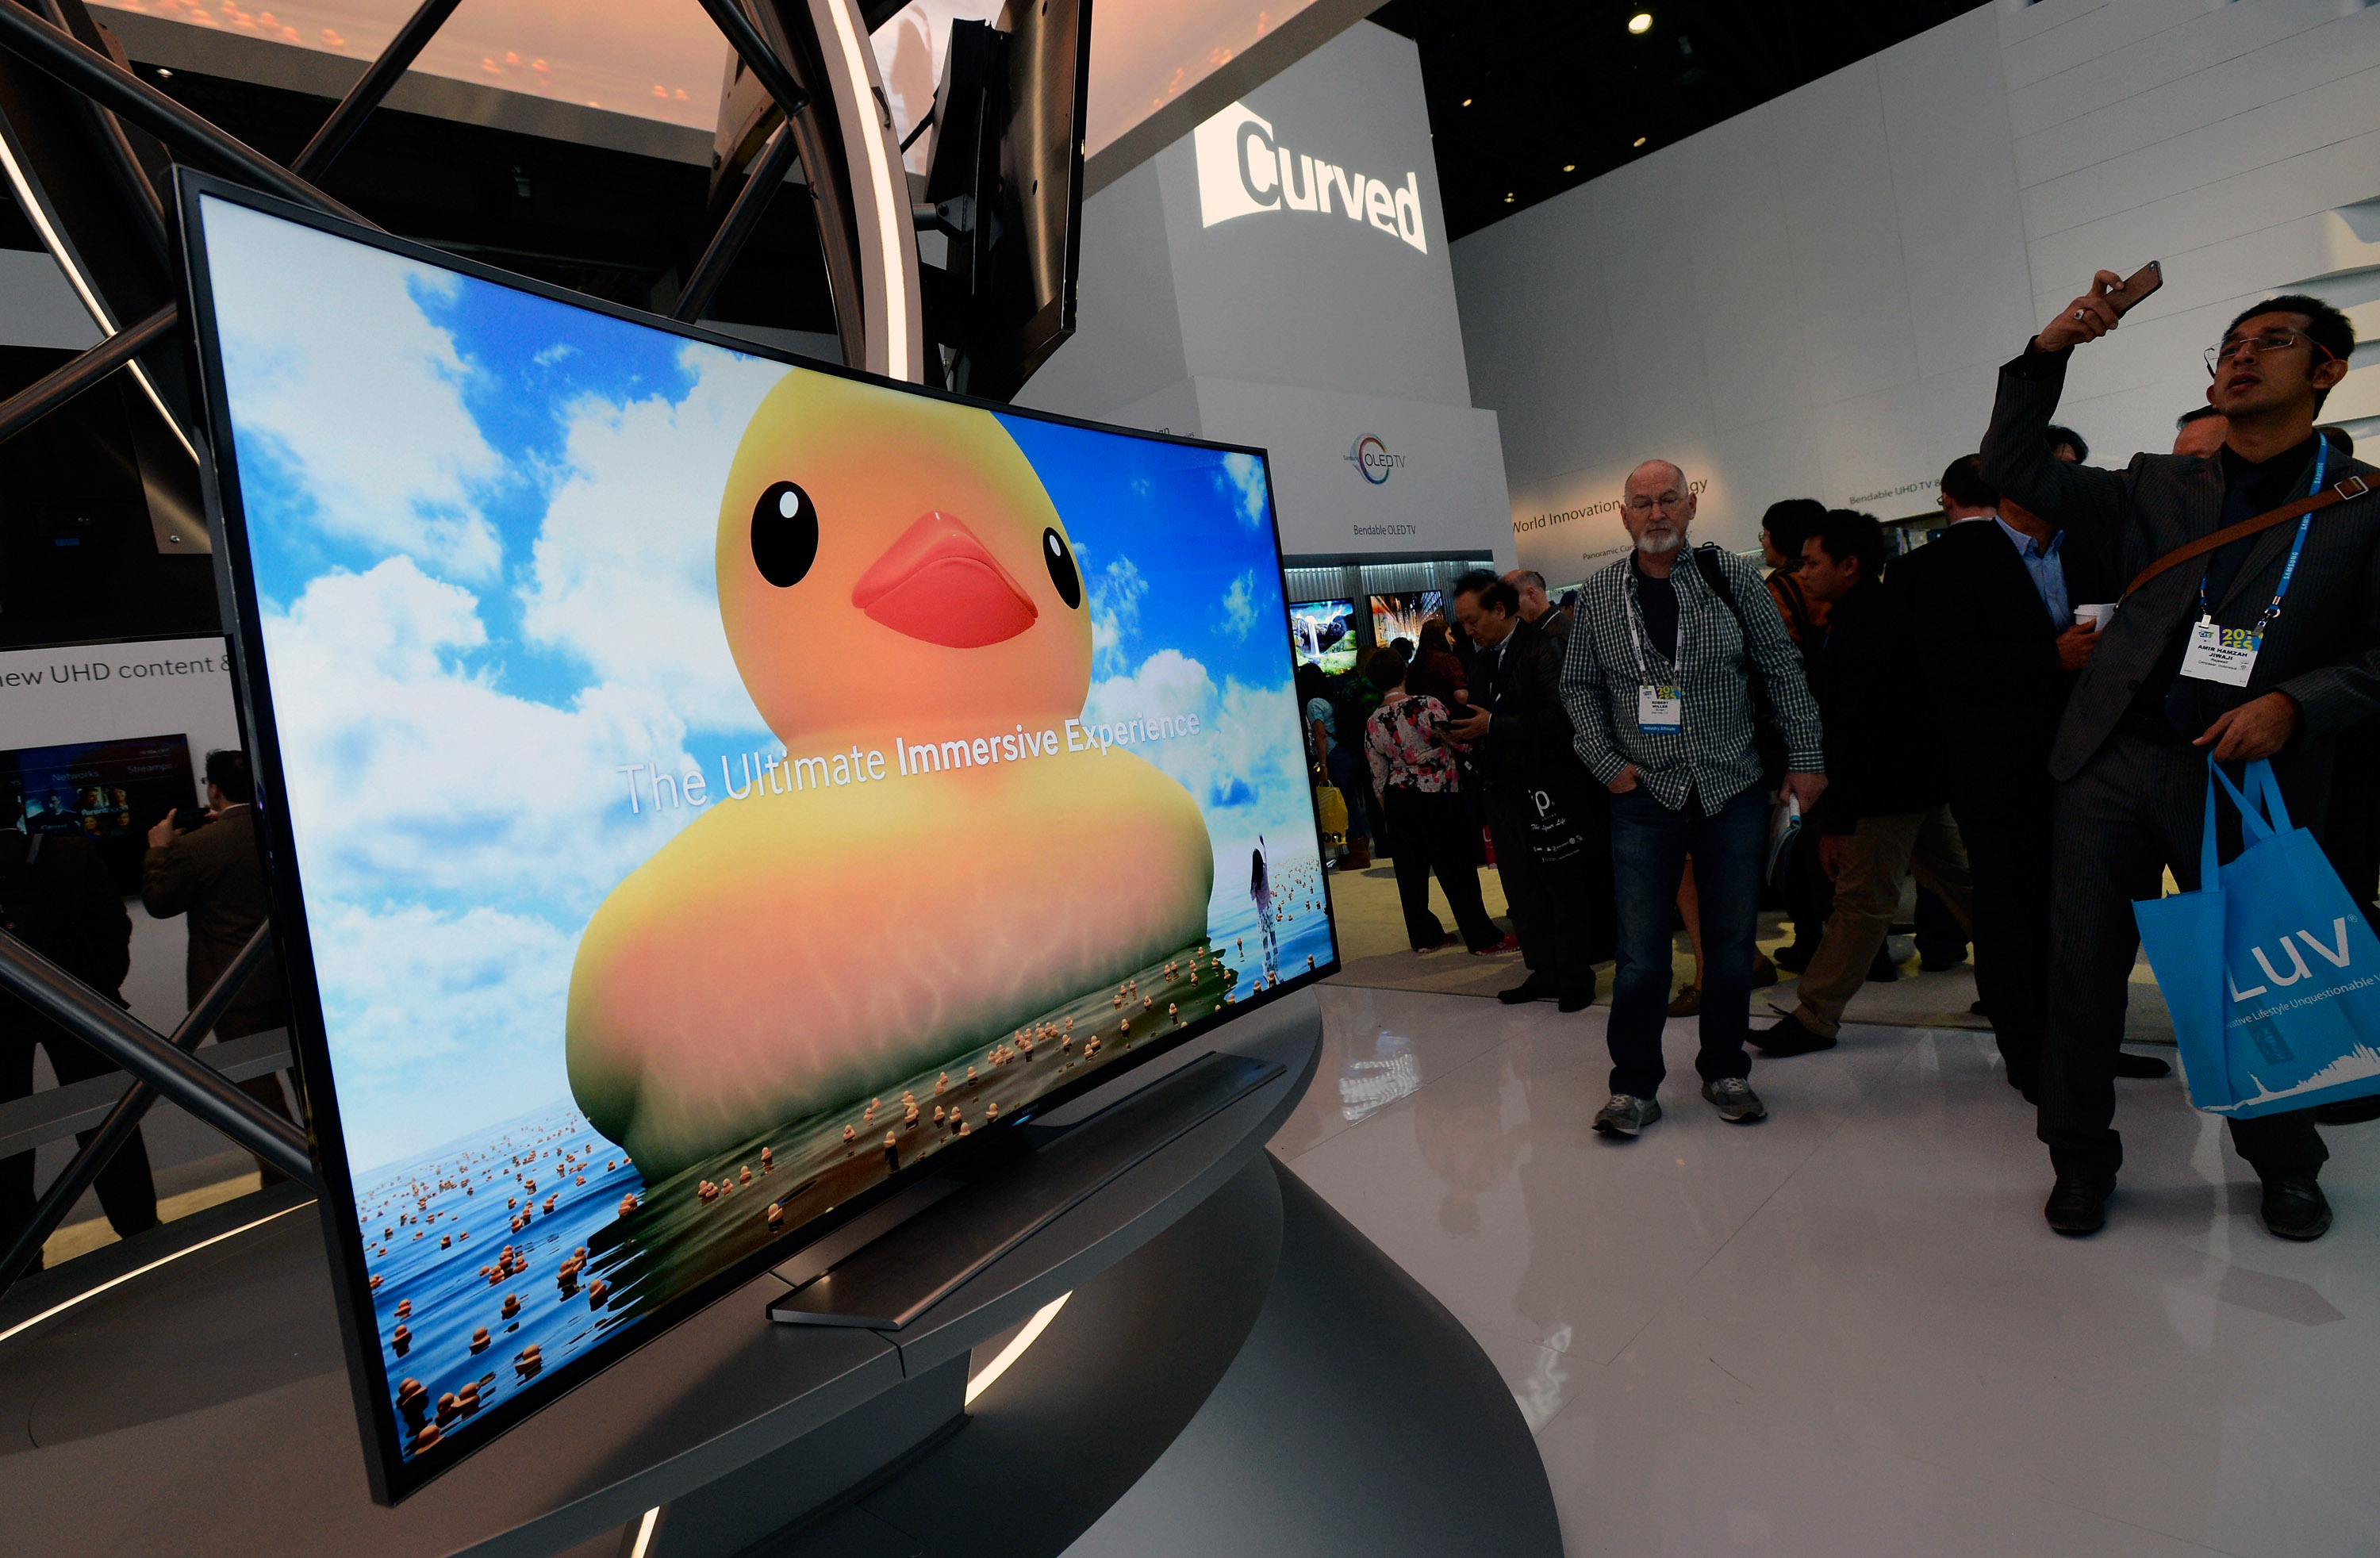 A Samsung curved OLED televison is seen on display. Ultra high-resolution TVs -- some curved and some flat -- were a mainstay at this year's show.